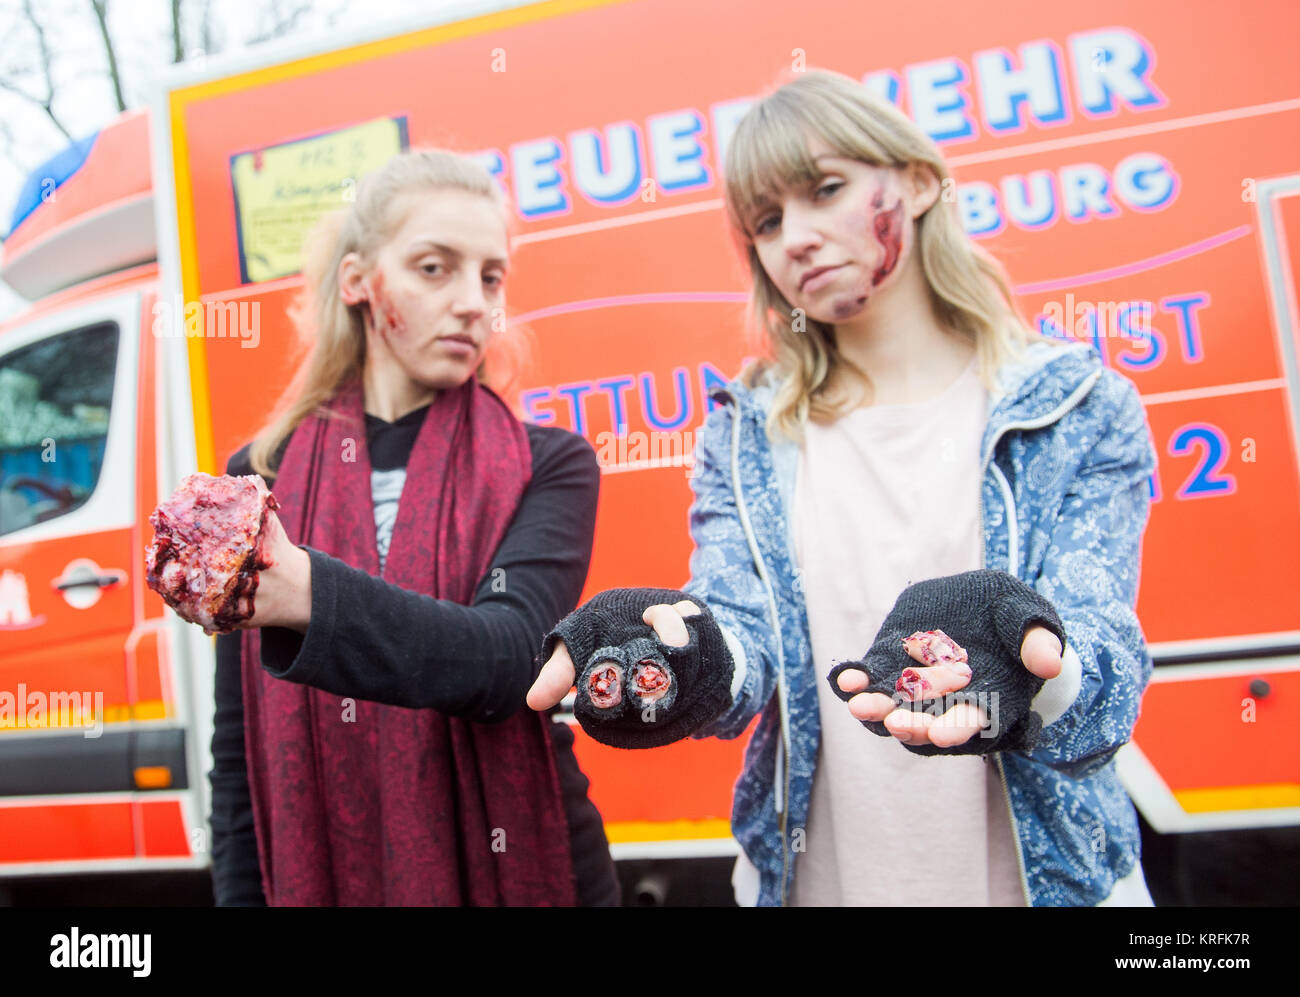 Two young women present fake injuries that could be caused by fireworks during a presentation of the firebrigade - Stock Image